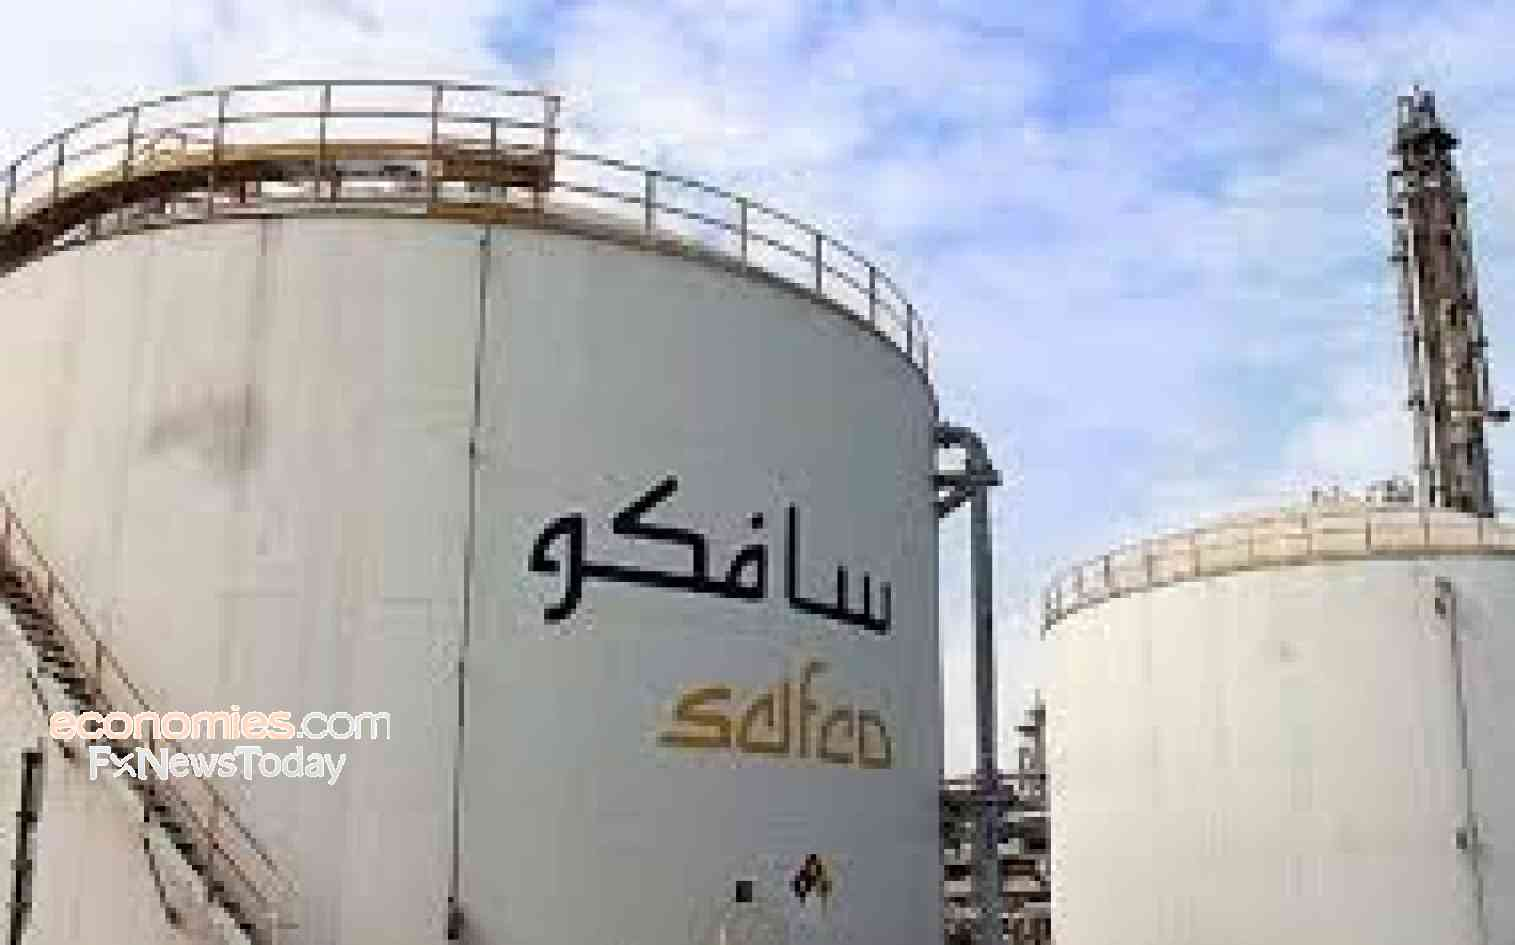 SAFCO shareholders to discuss SAR1.5/share dividend April 7